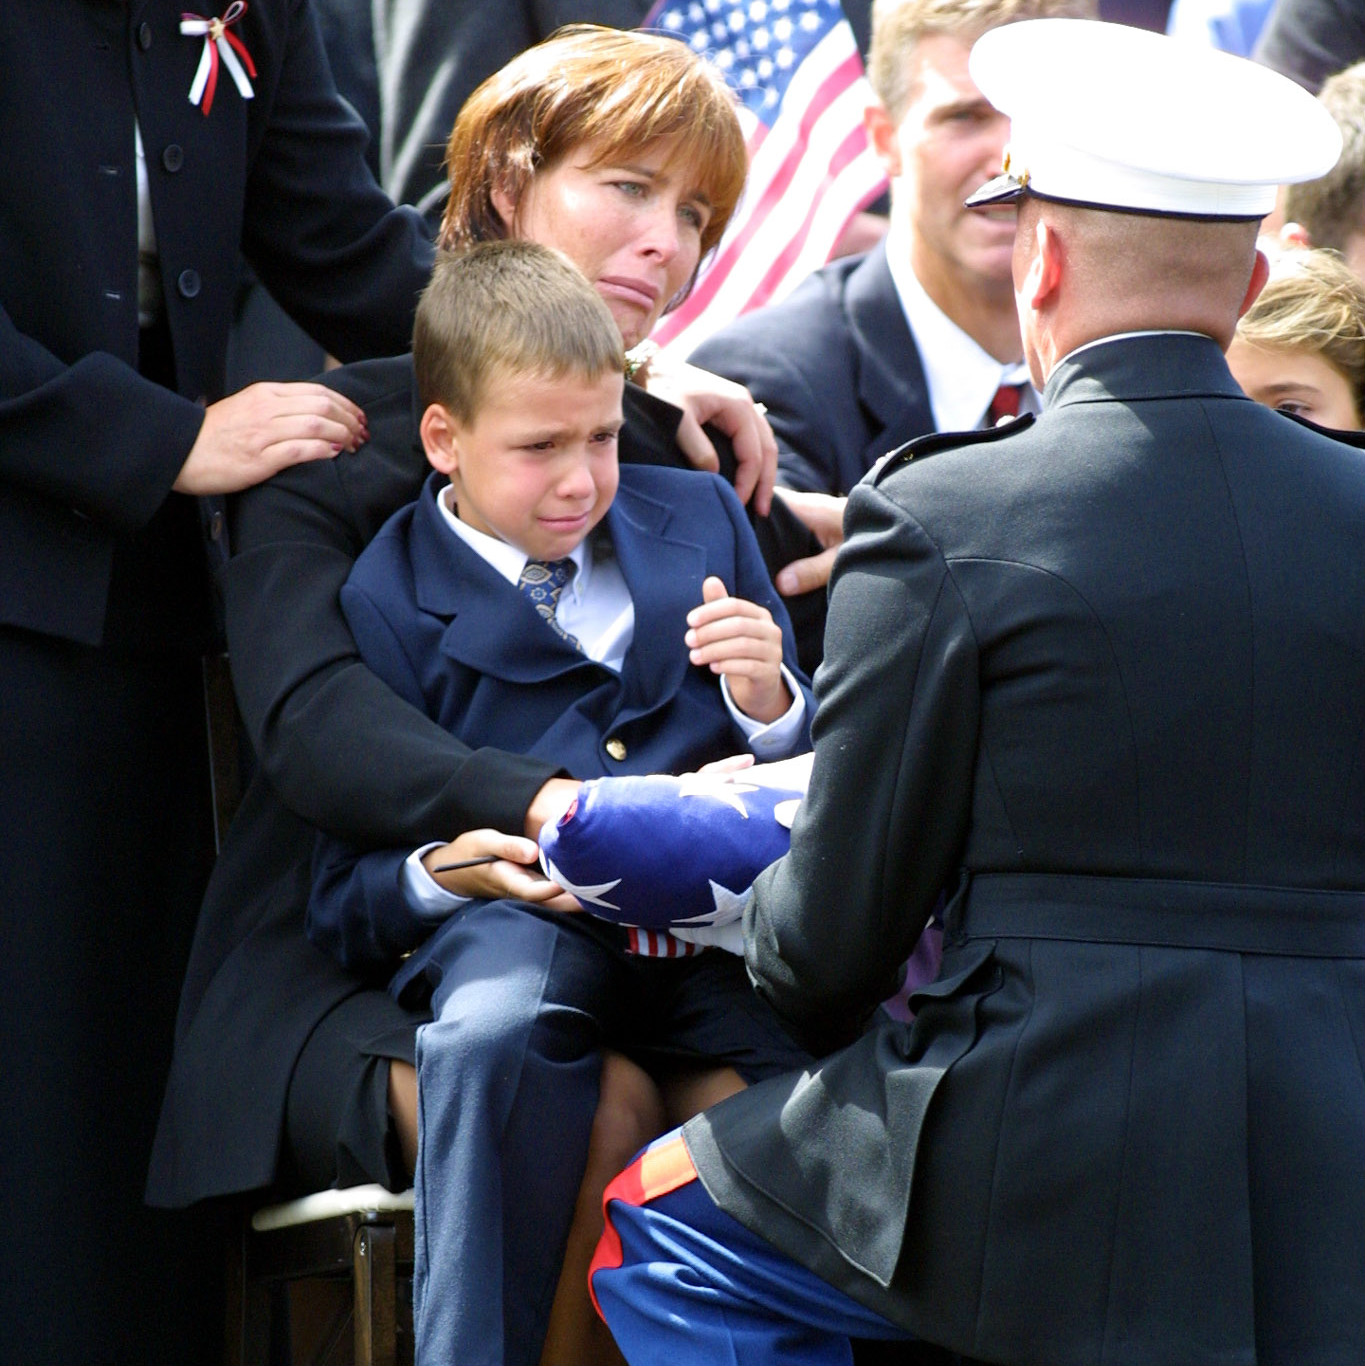 funeral flag presentation Getty Images/TOM MIHALEK